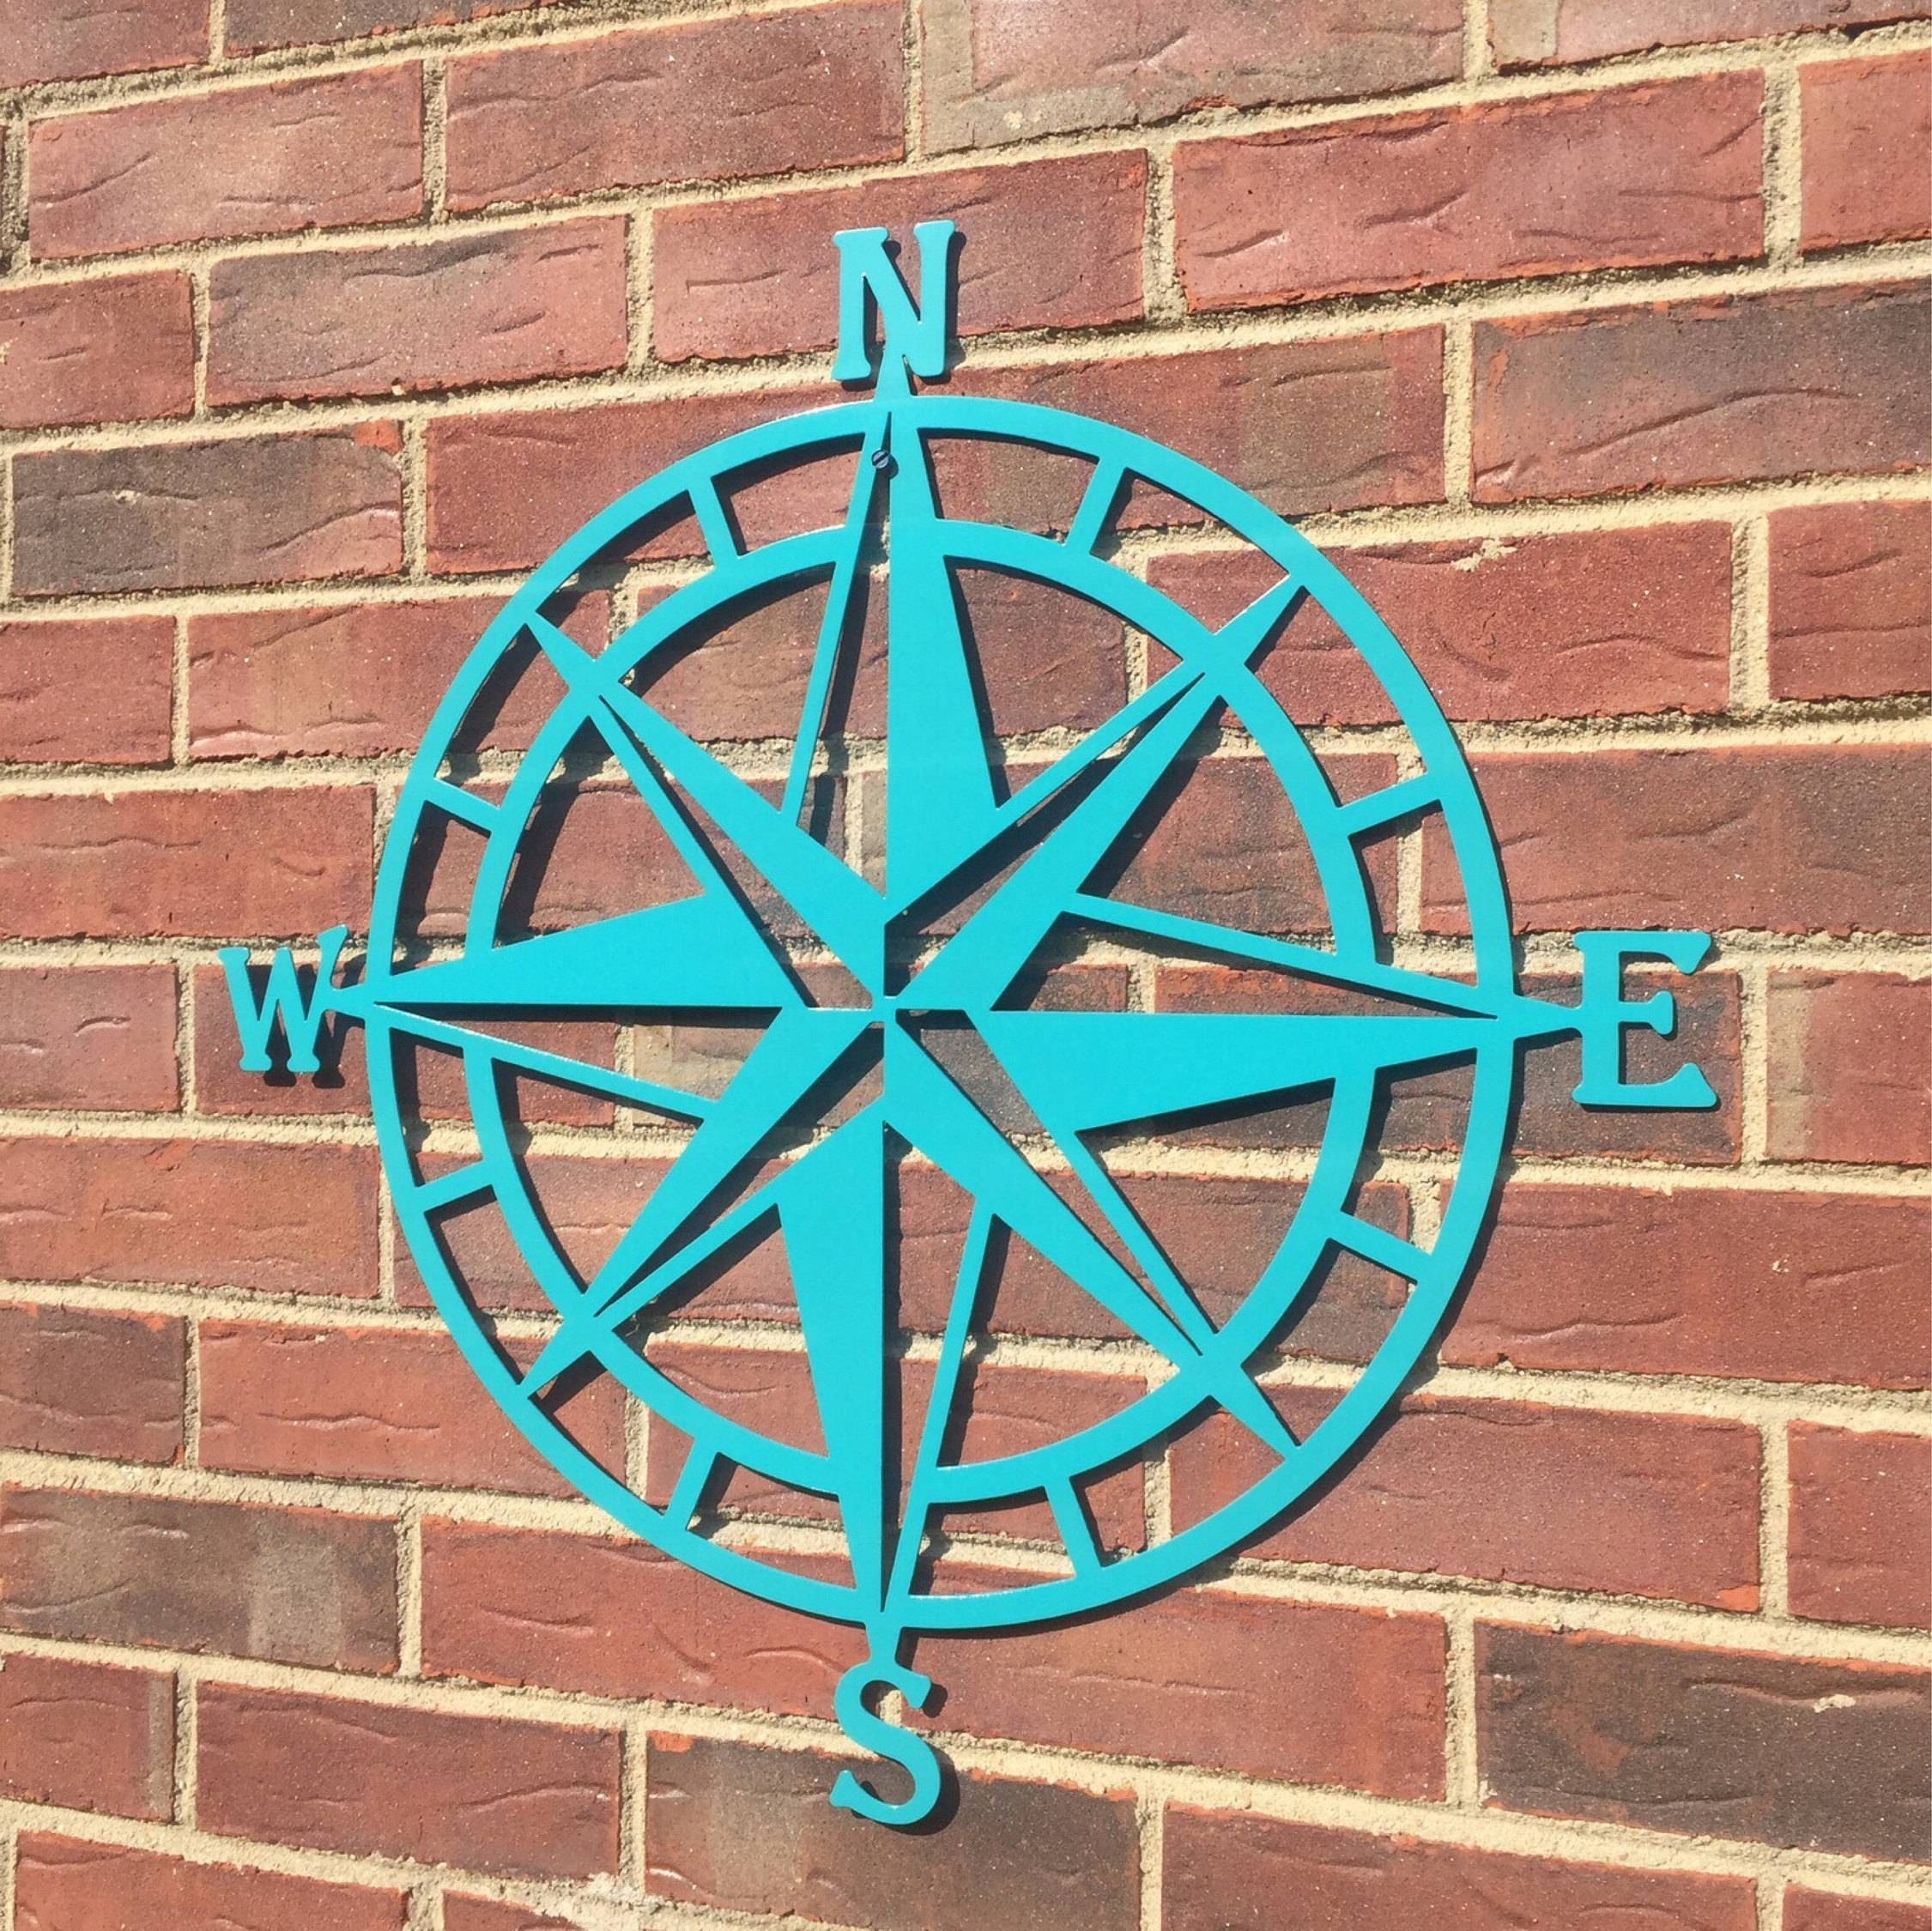 Steel Nautical Star Compass Wall Art Nautical Decor Metal With Regard To Best And Newest Decorative Outdoor Metal Wall Art (View 10 of 20)